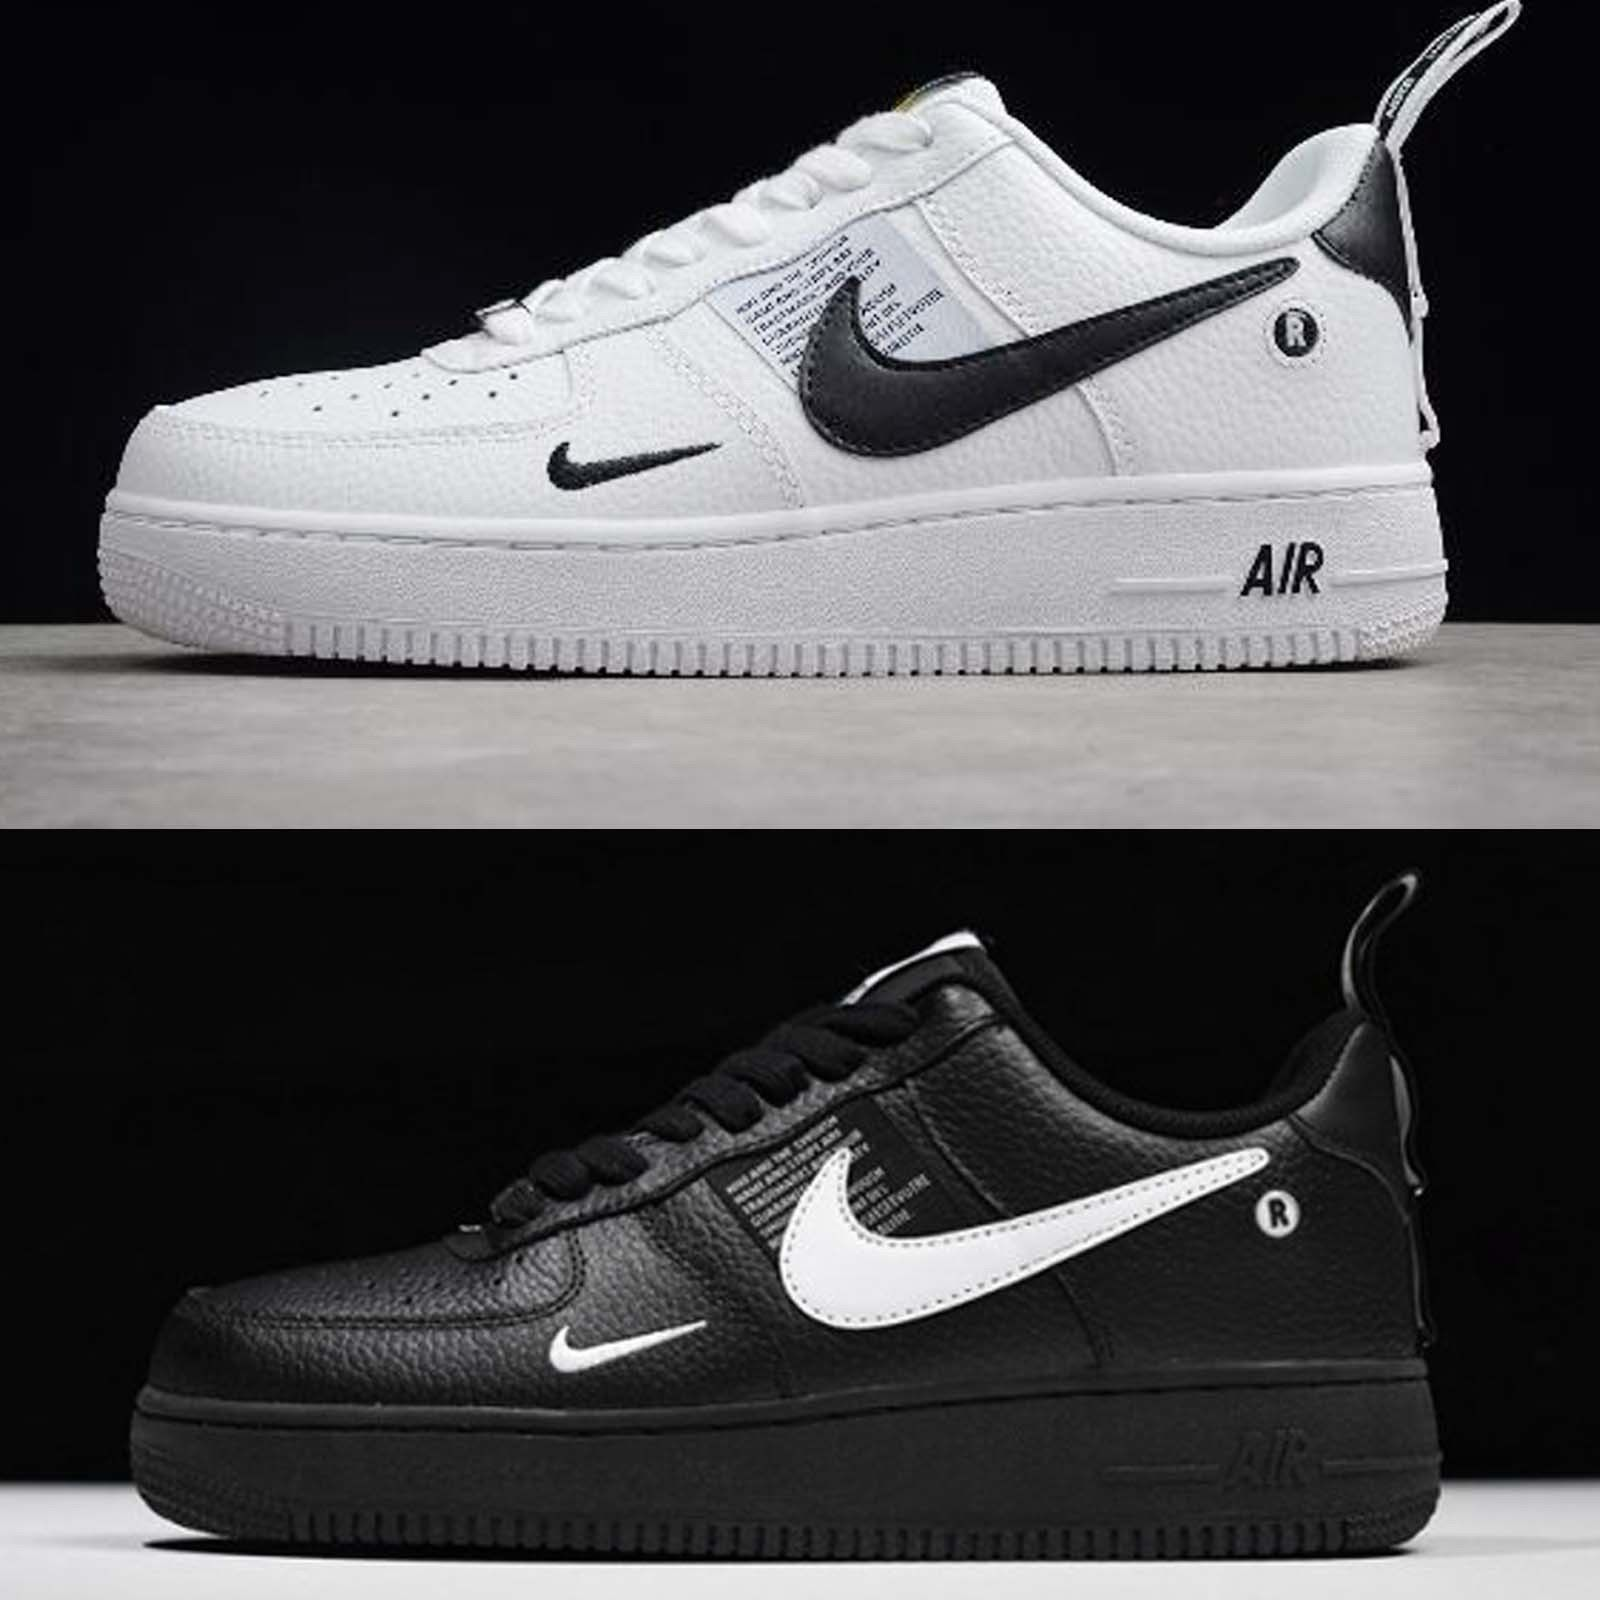 new arrival 8d4d1 a9d9c Nike Air Force 1 07 LV8 utility back and white